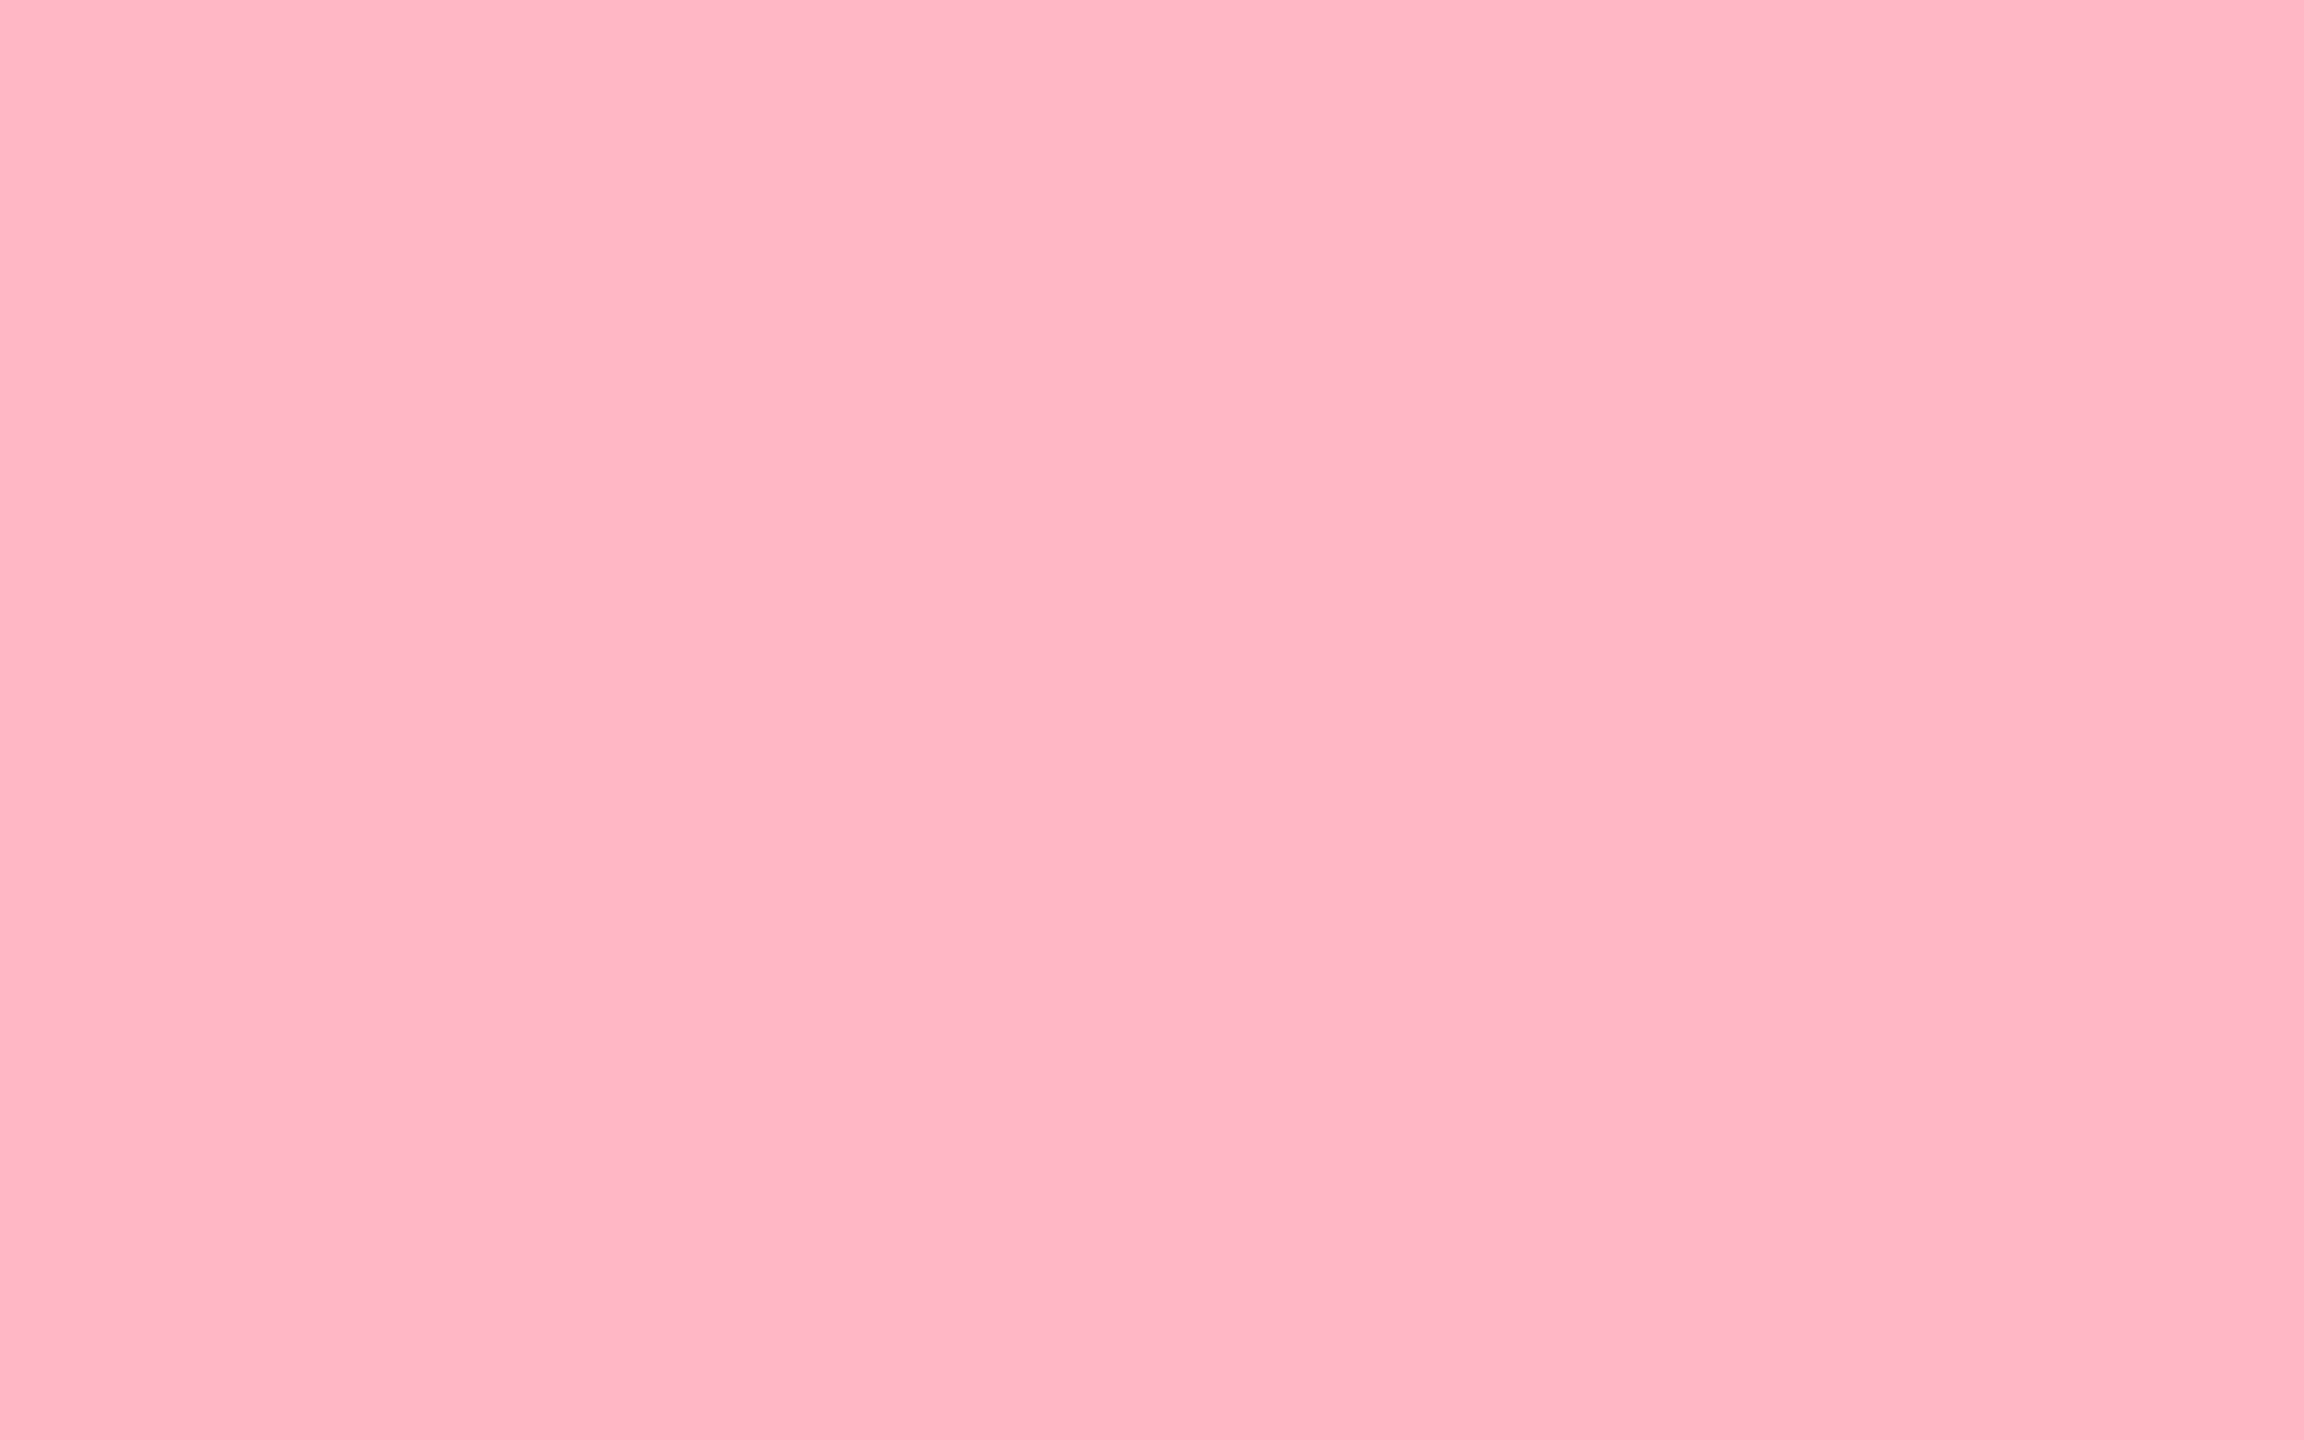 2304x1440 Cherry Blossom Pink Solid Color Background